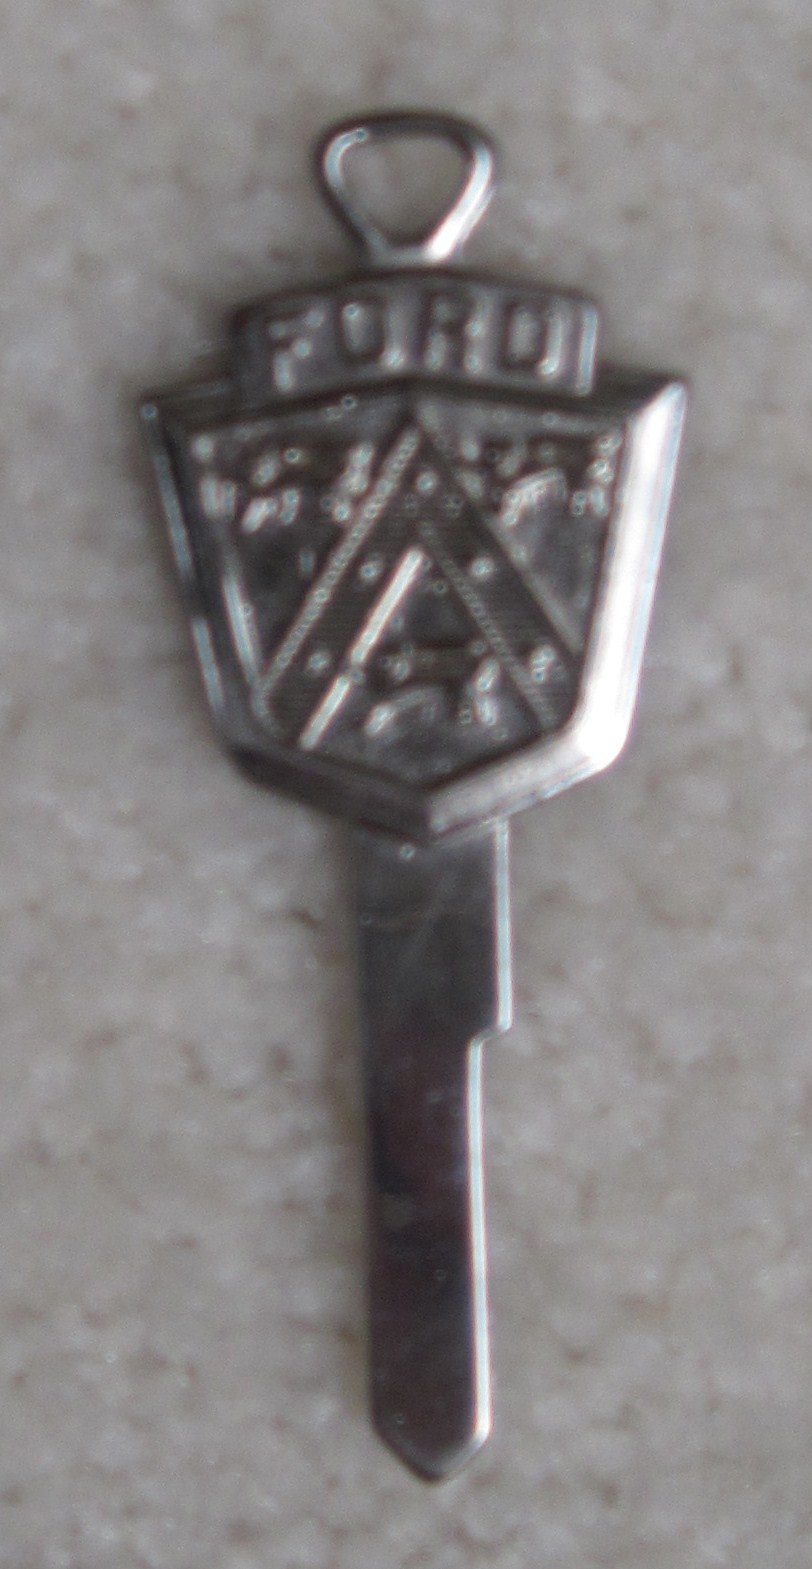 Ford Crest Key - 1951 and 1952